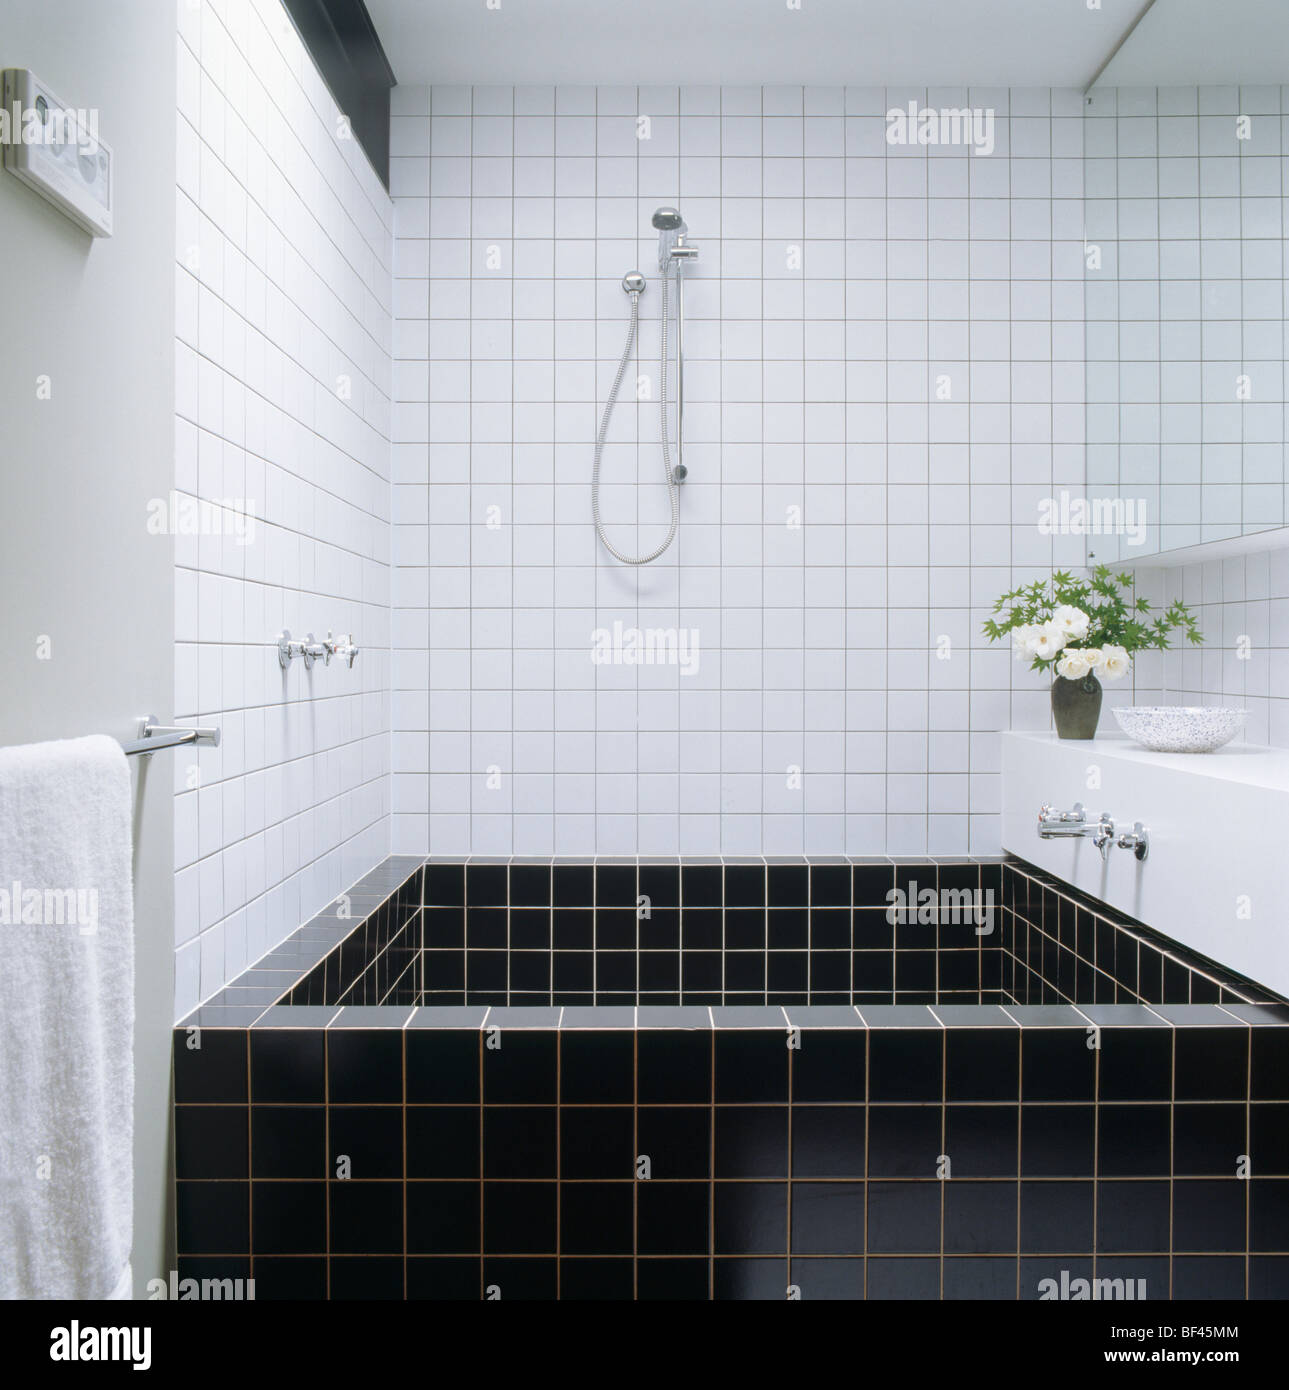 Shower above square black tiled bath in modern white tiled bathroom ...